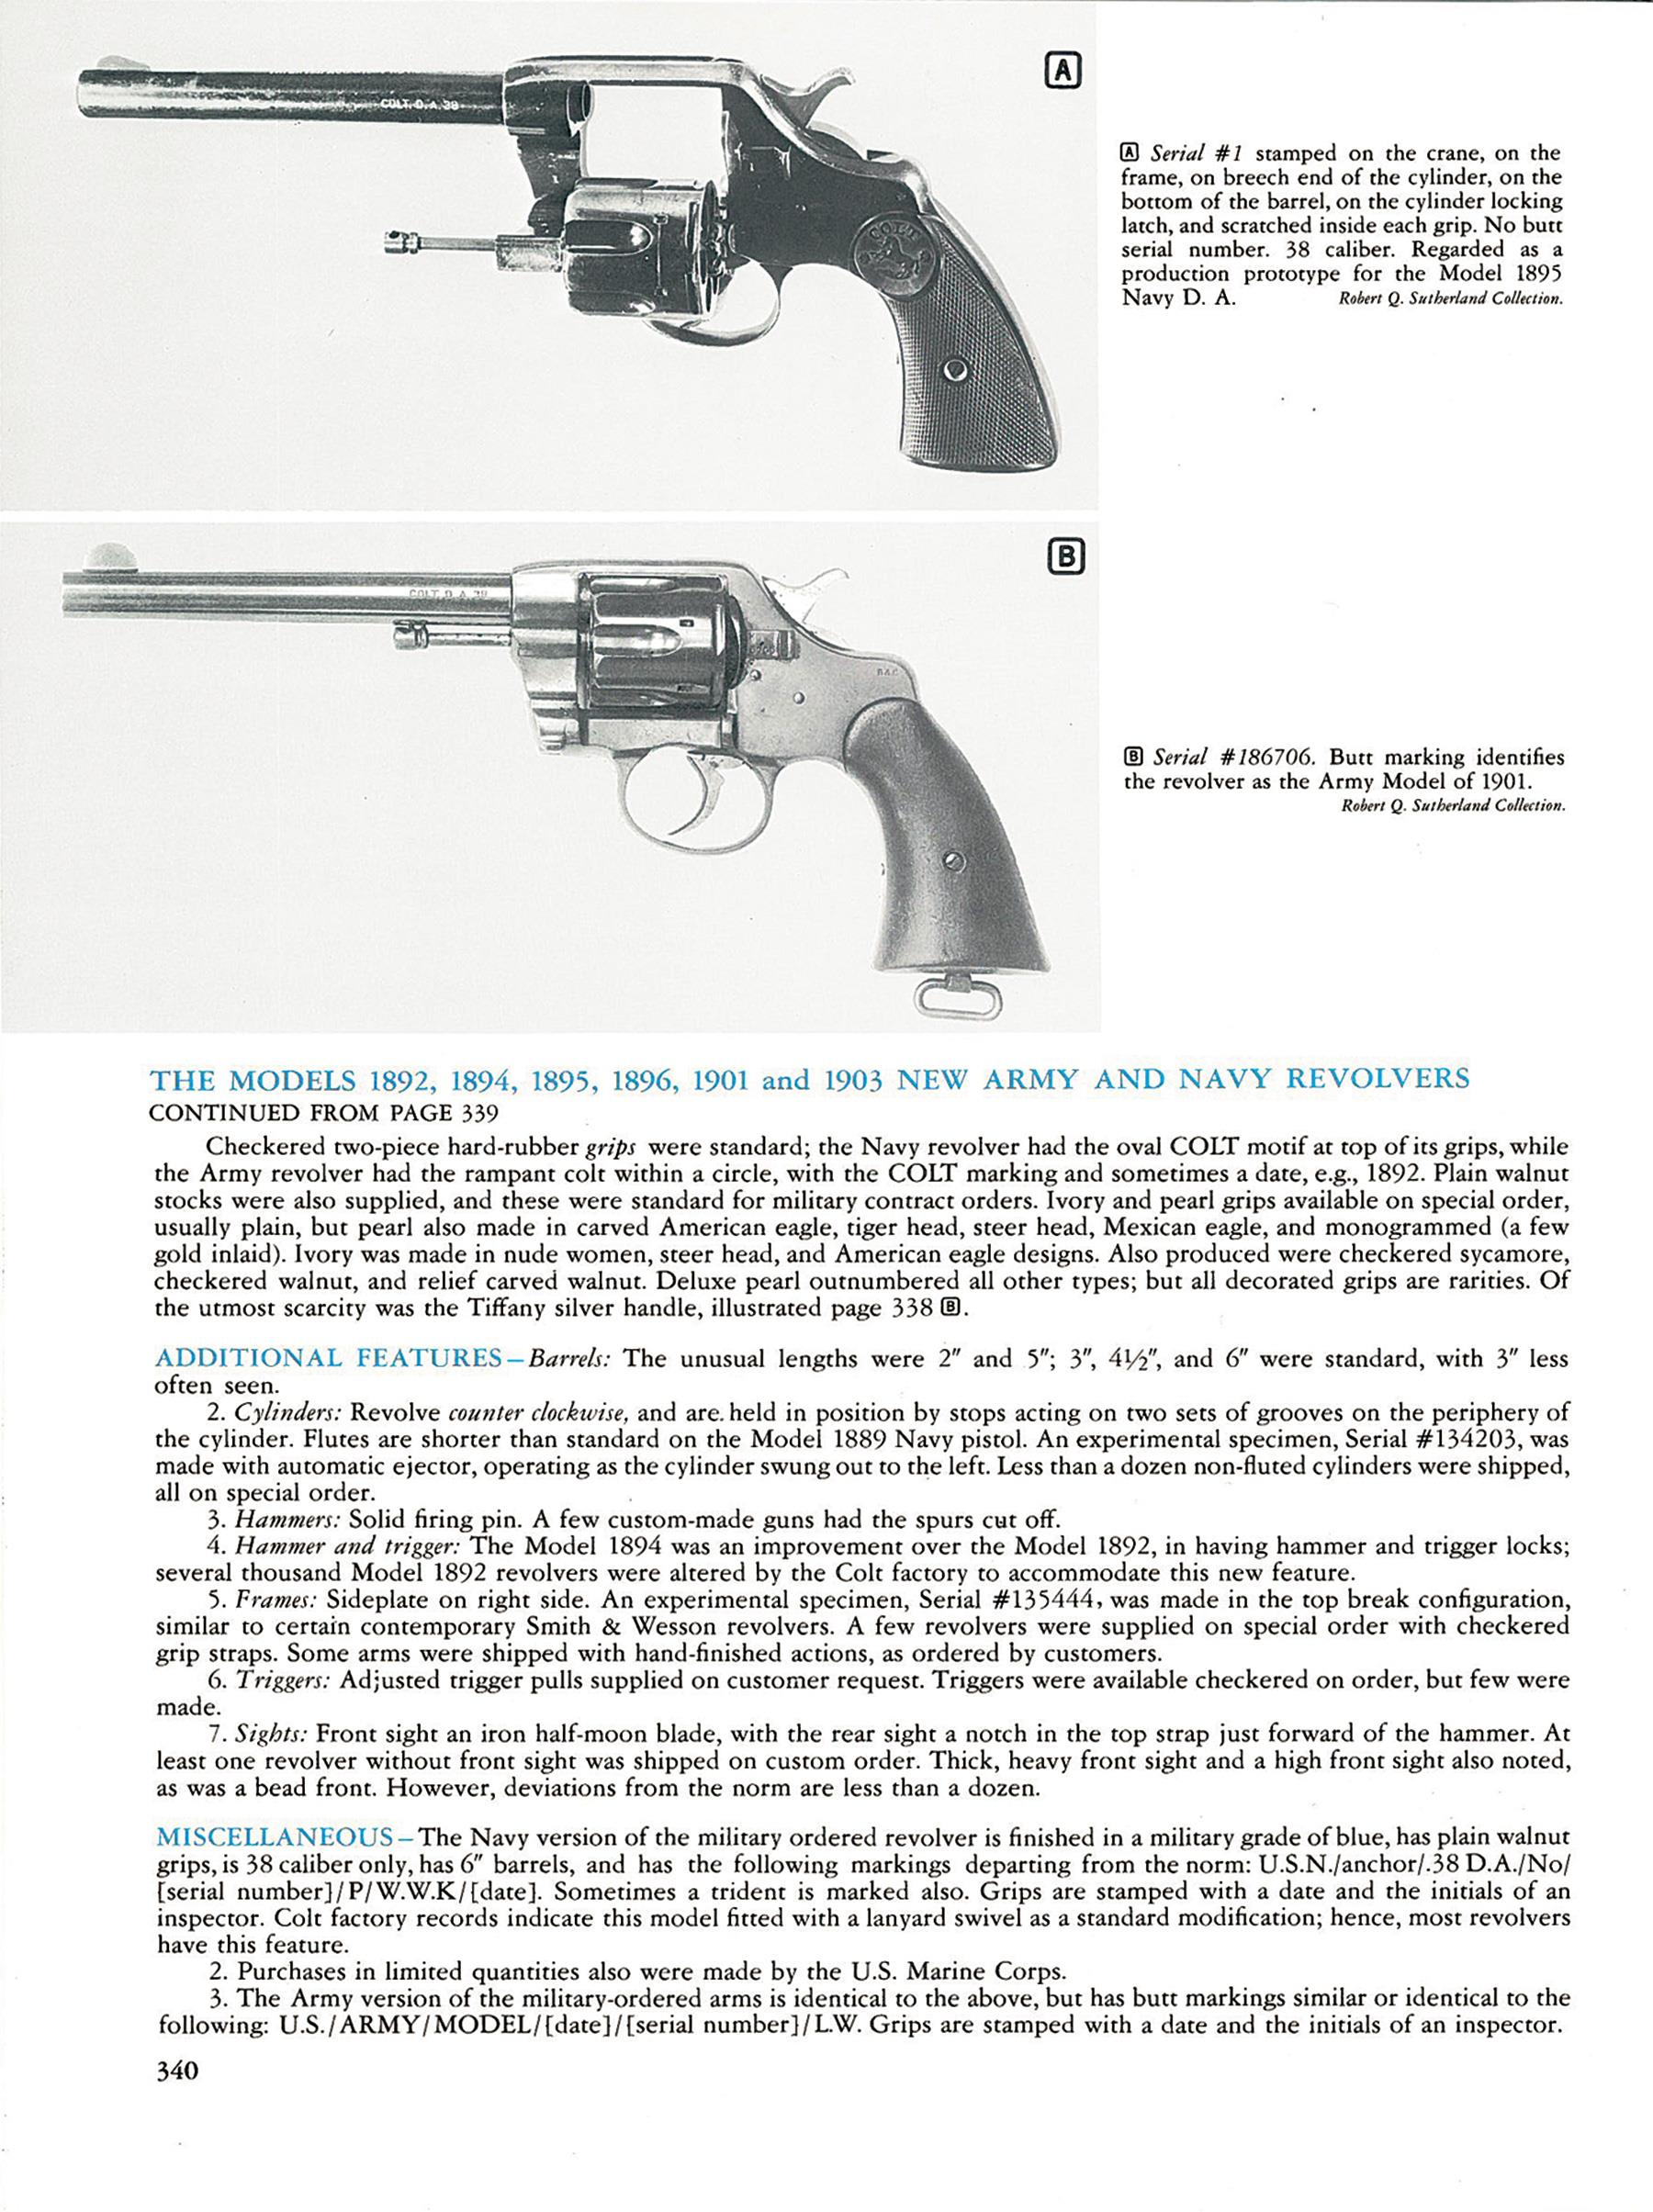 "Page 340 of R.L. Wilson's book with the reference to this revolver under the heading ""Additional Features""."